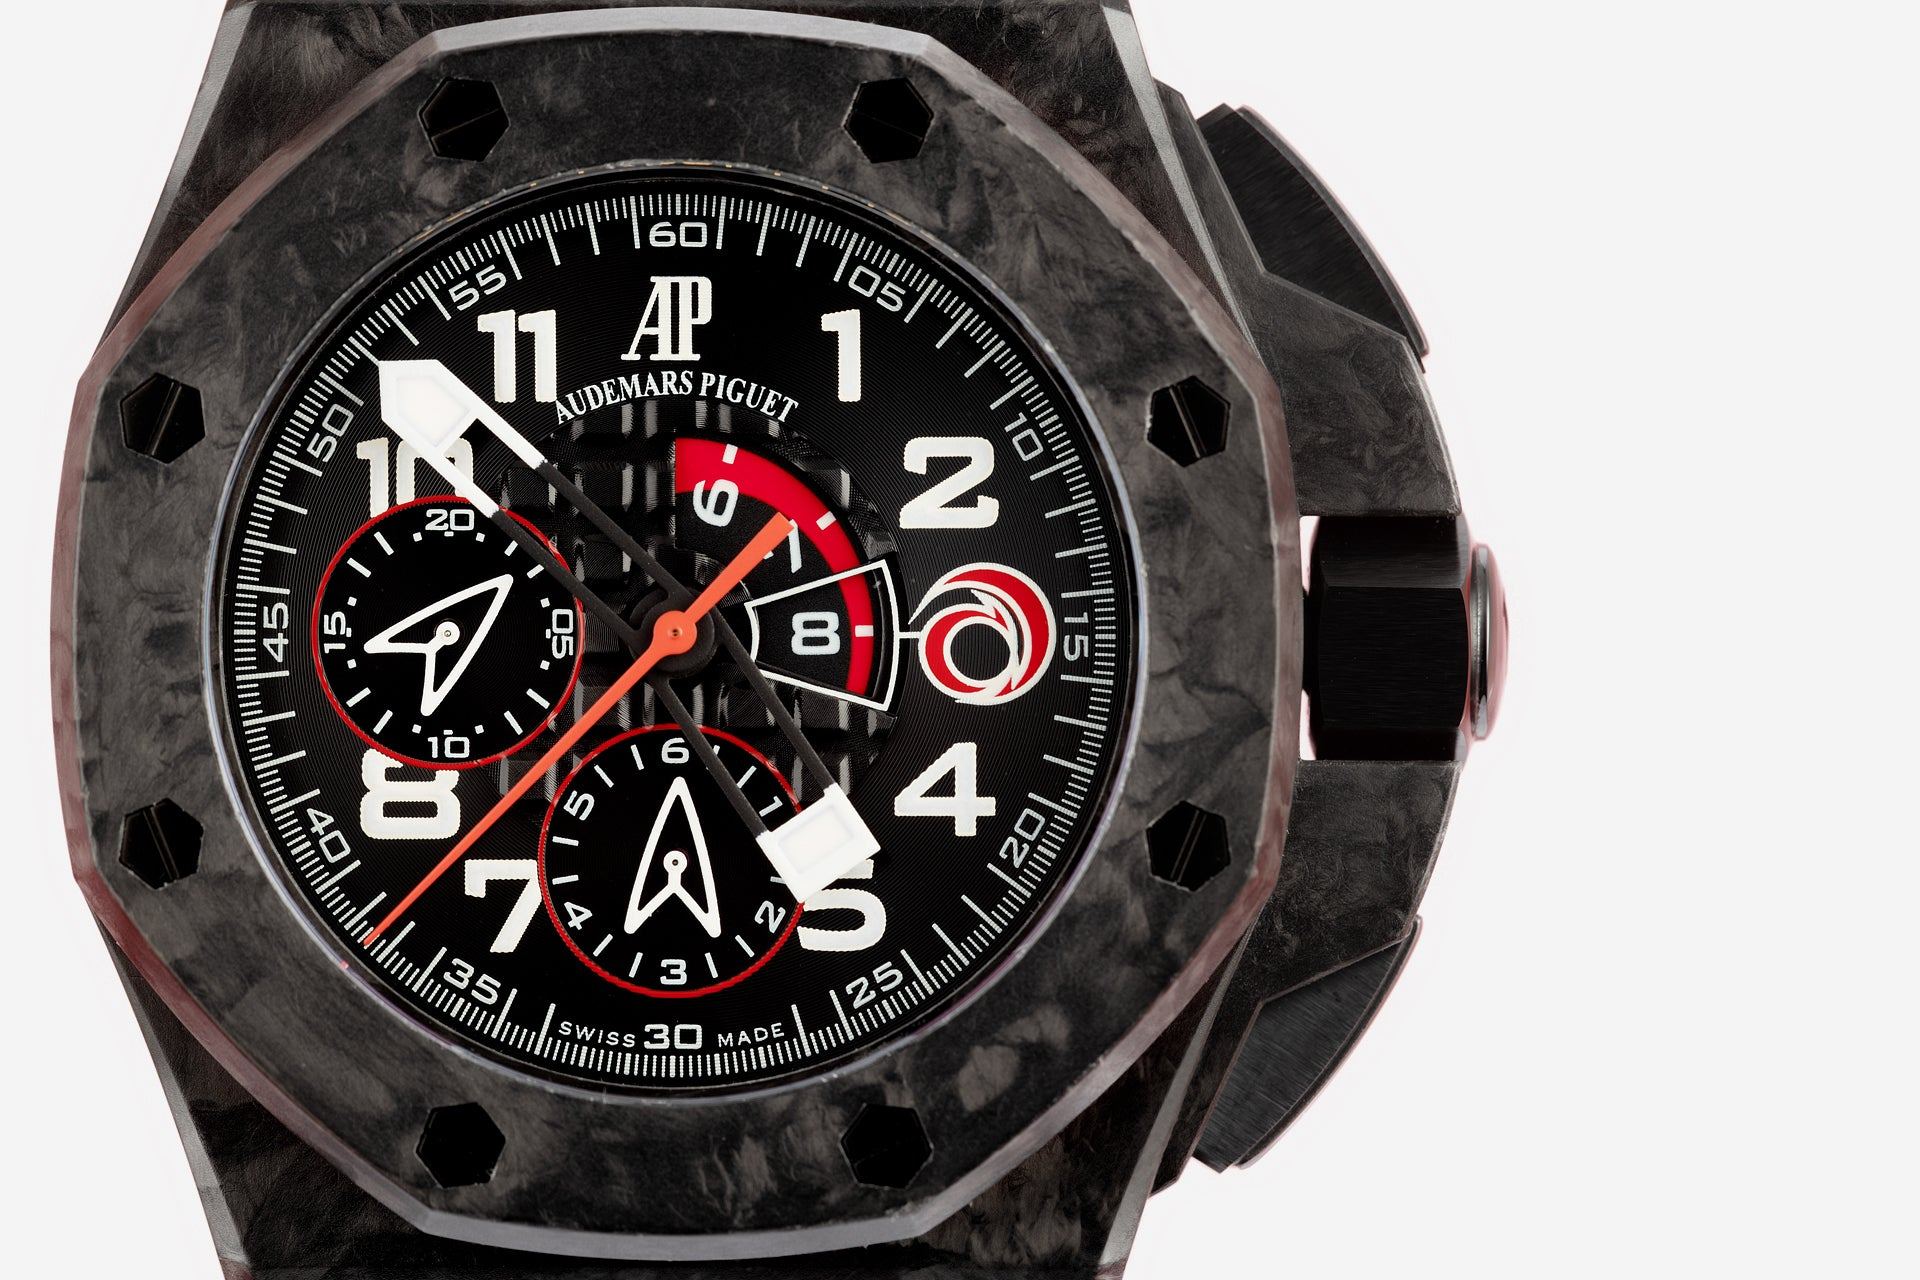 Audemars Piguet Royal Oak Offshore collaboration with Team Alinghi incorrect logo for A Collected Man London